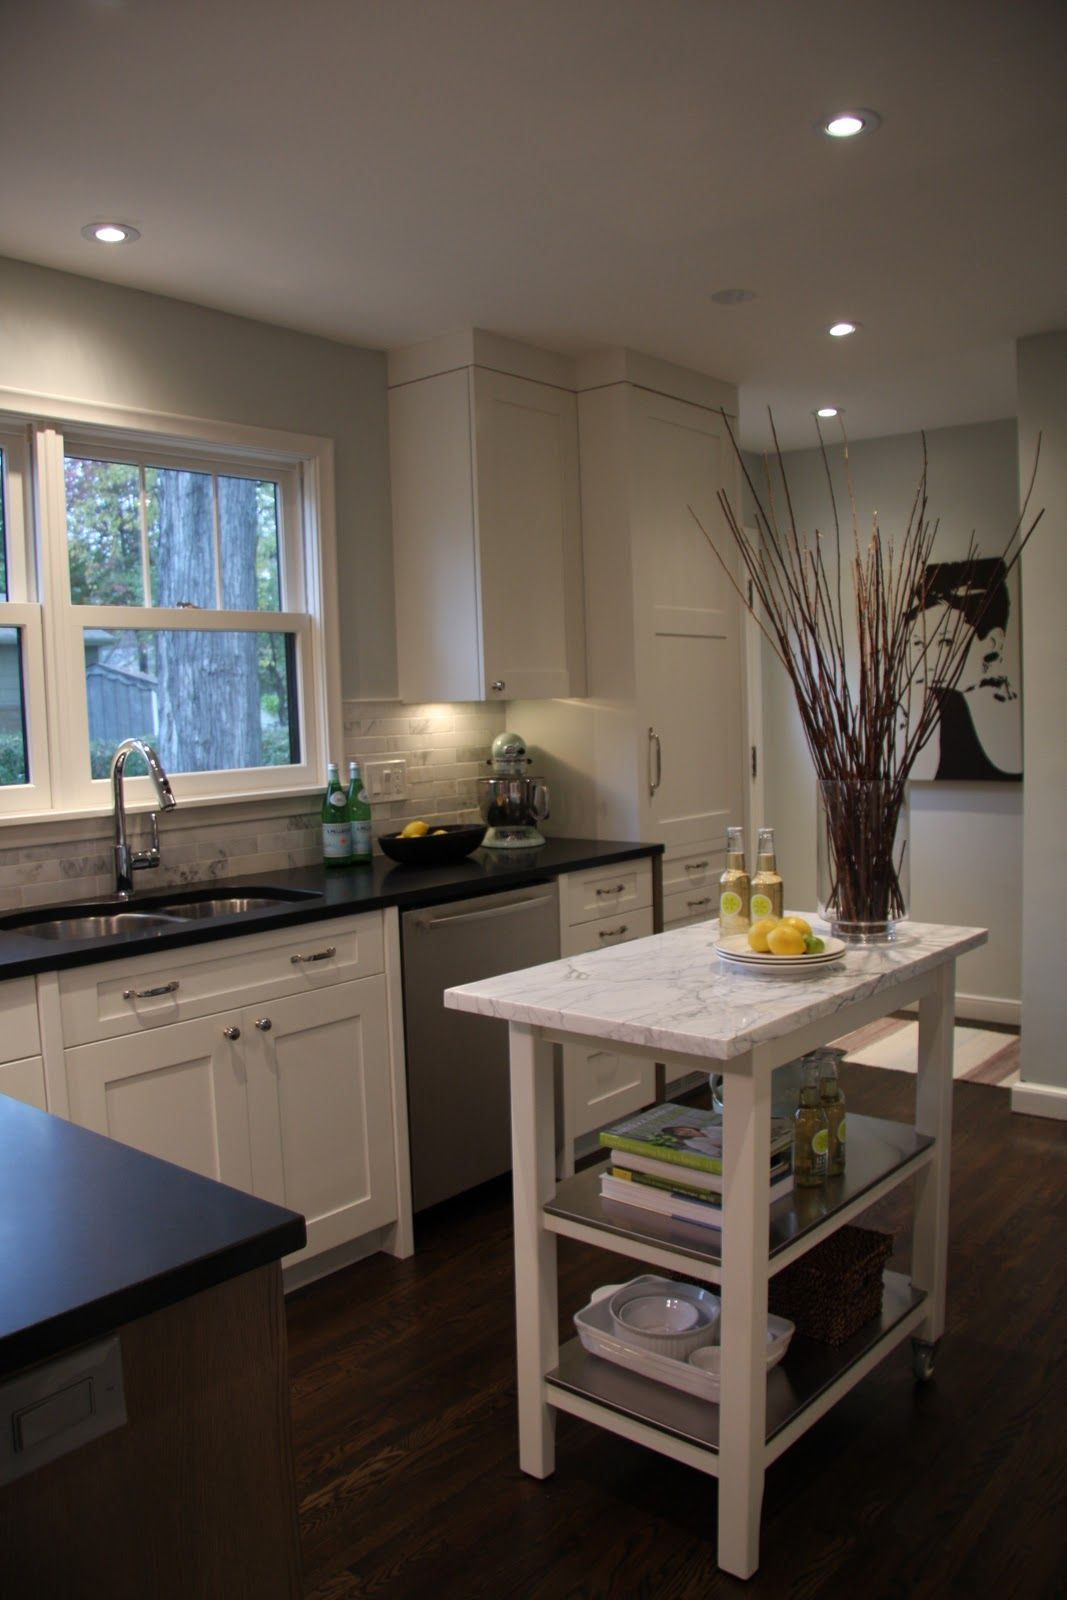 Carrera Marble Subway Tile Honed Absolute Black Granite Ikea Stenstorp 199 Kitchen Cart With A Remnant Cut To Fit The Top